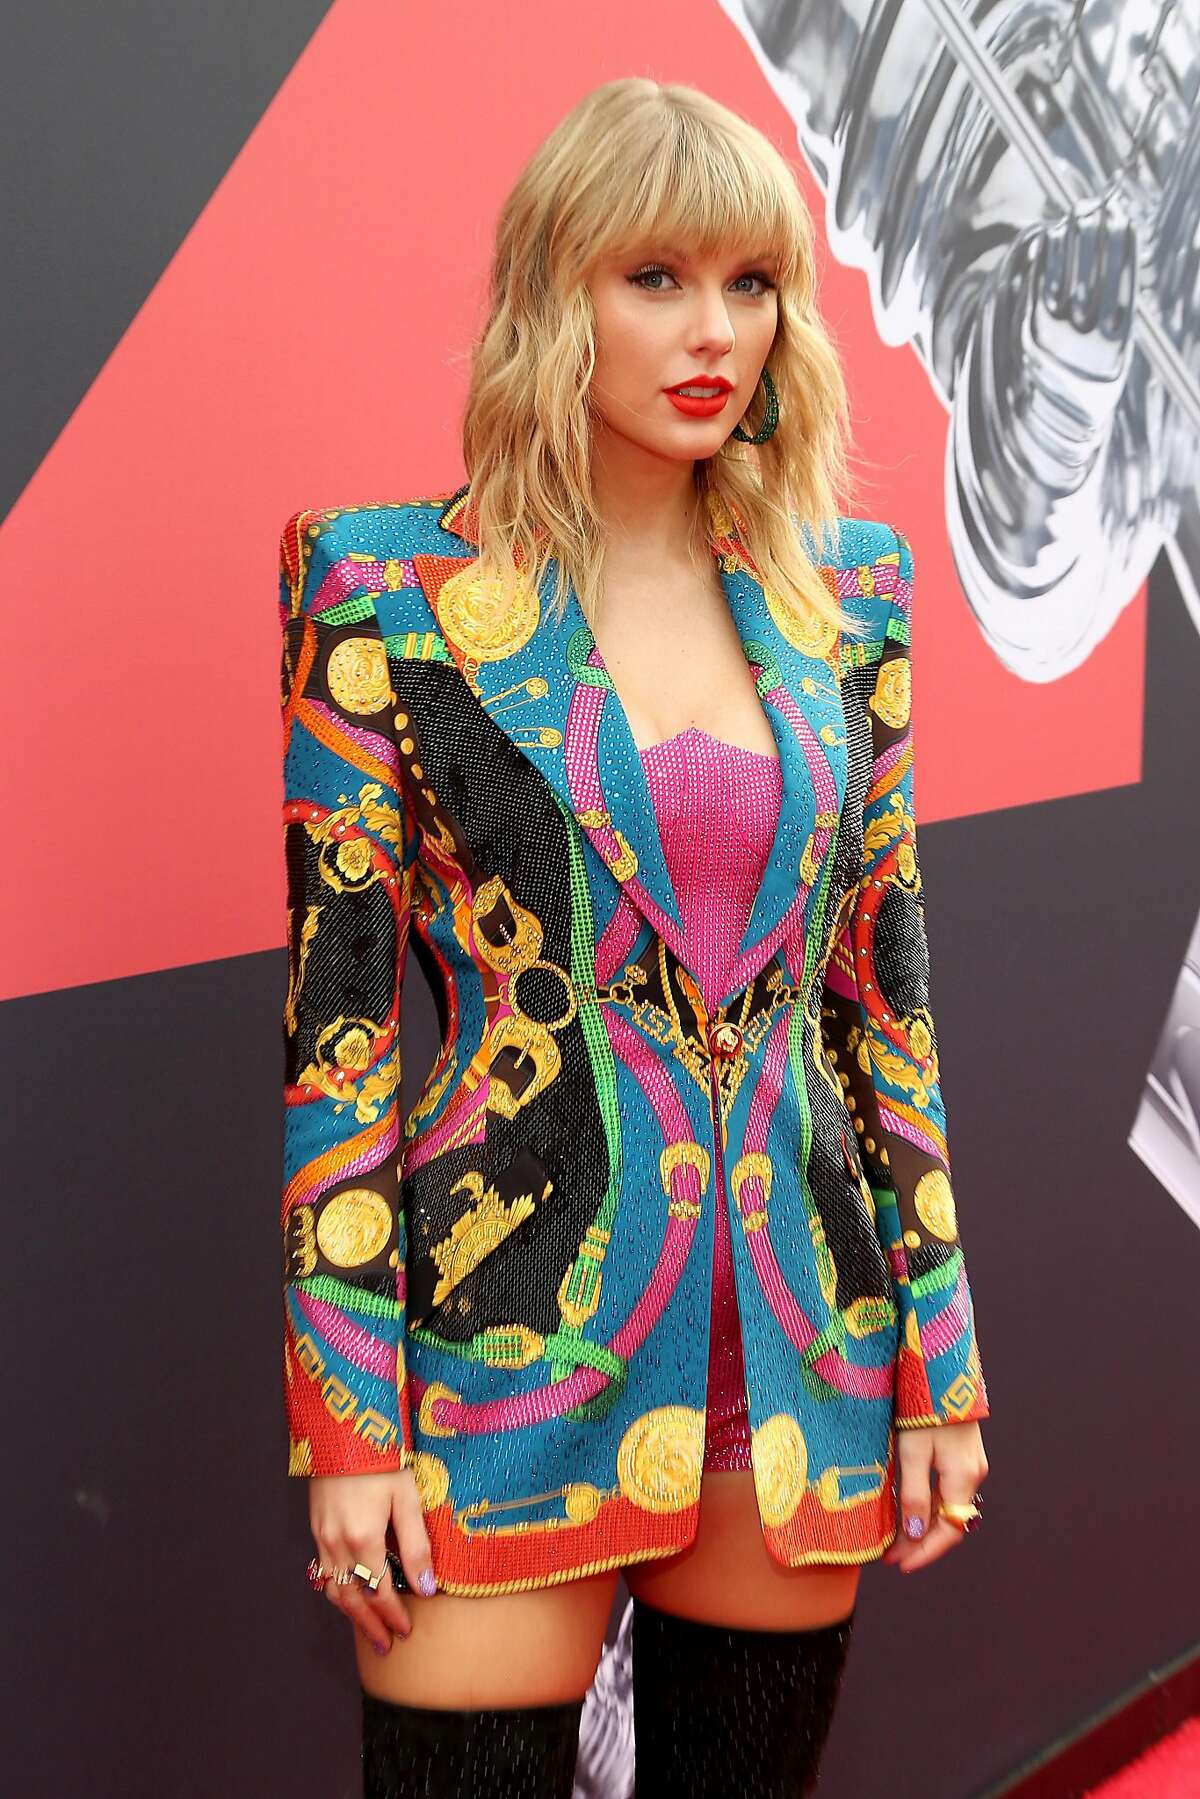 Taylor Swift attends the 2019 MTV Video Music Awards at Prudential Center on August 26, 2019 in Newark, New Jersey. (Photo by Manny Carabel/Getty Images for Viacom)